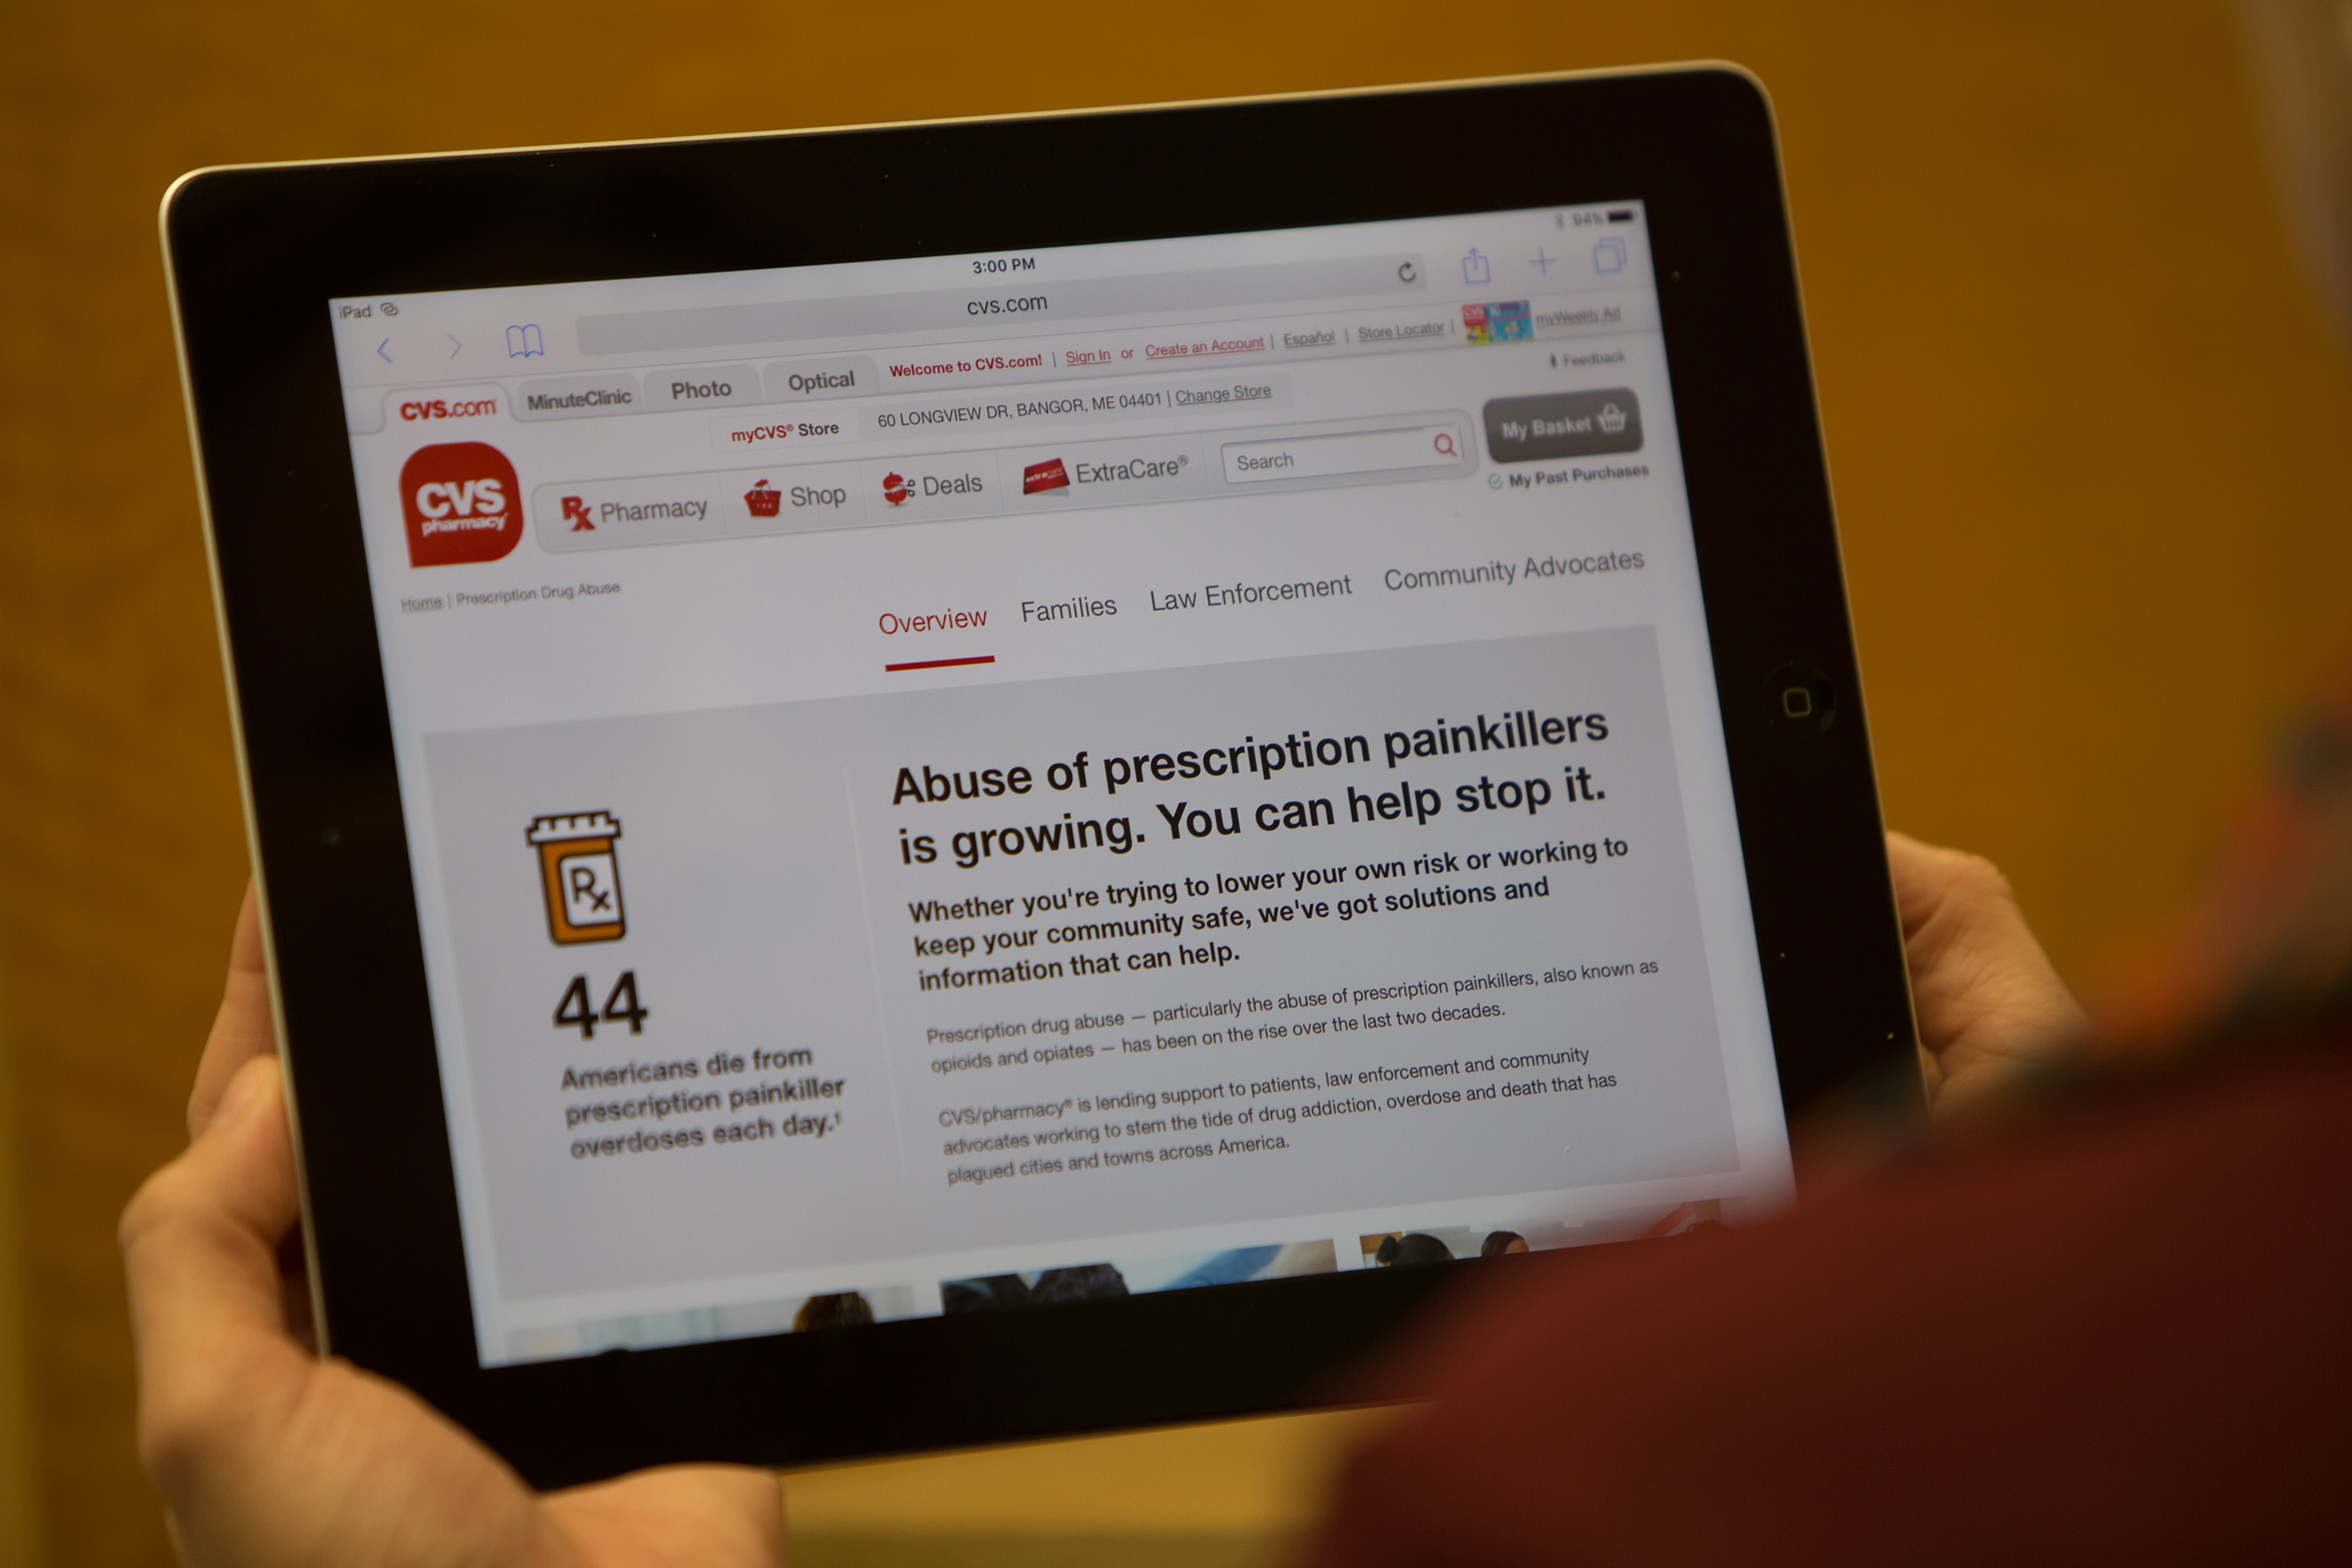 CVS Pharmacy patients can visit CVS.com for resources on proper medication use and disposal to prevent prescription drug abuse